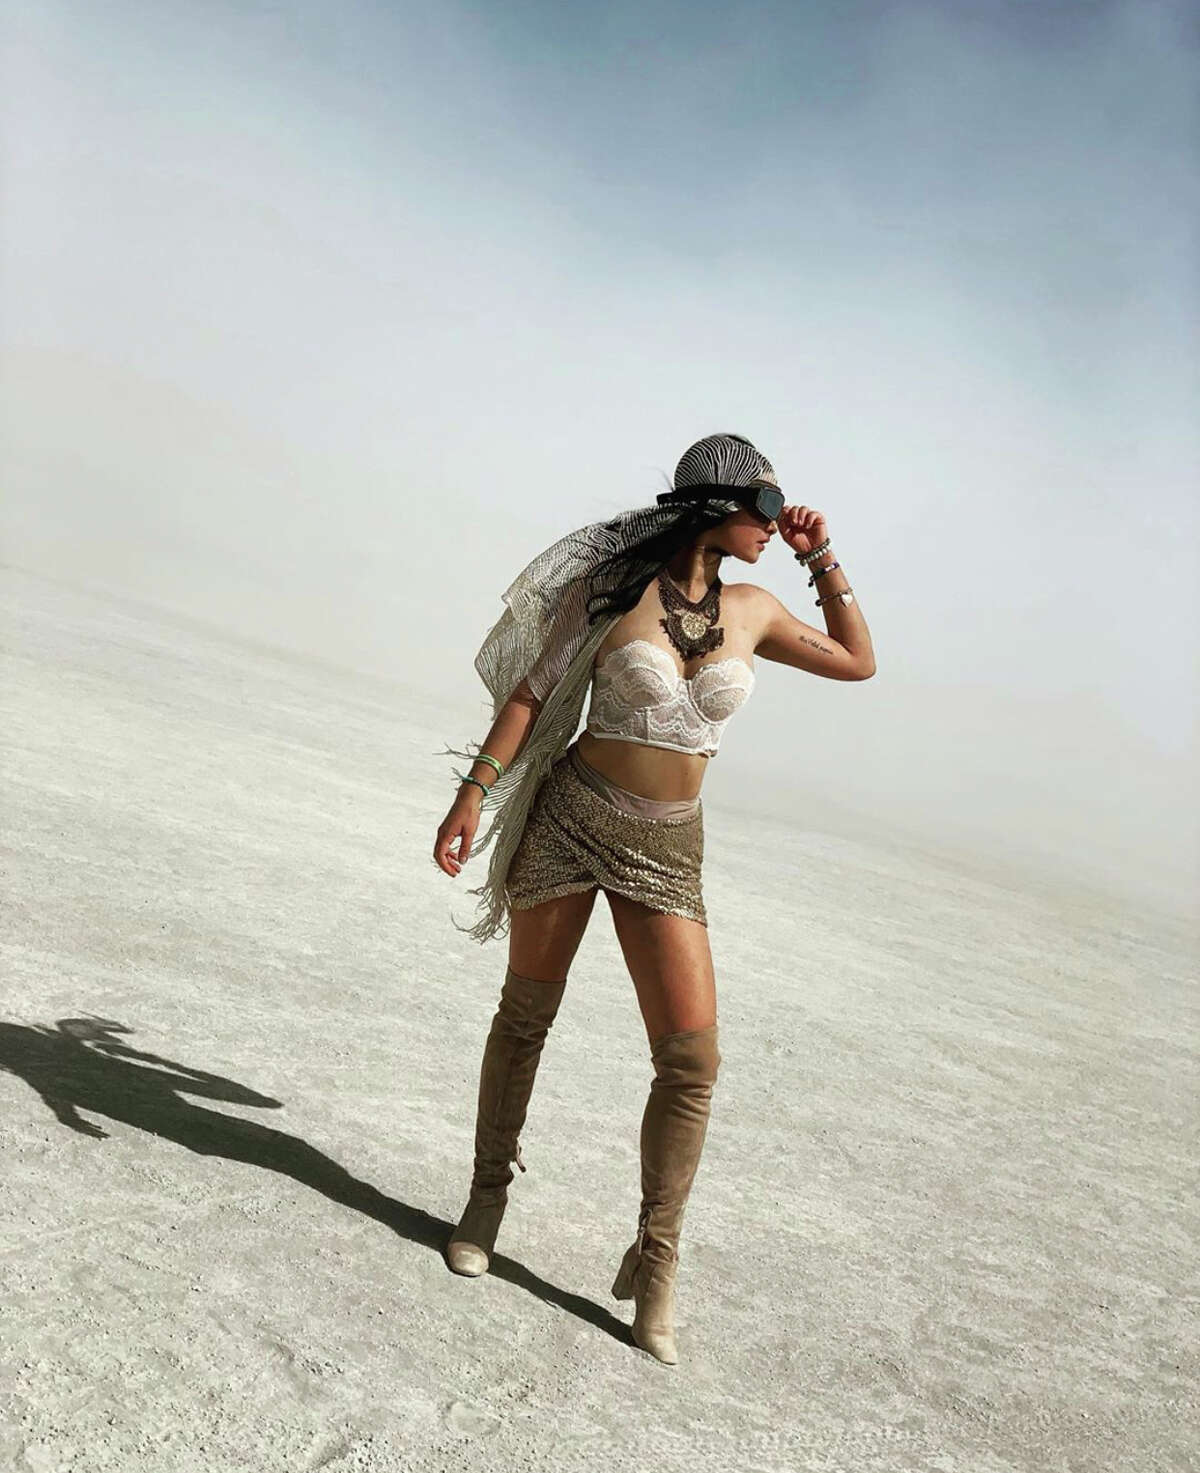 Lost in the dunes at Burning Man.